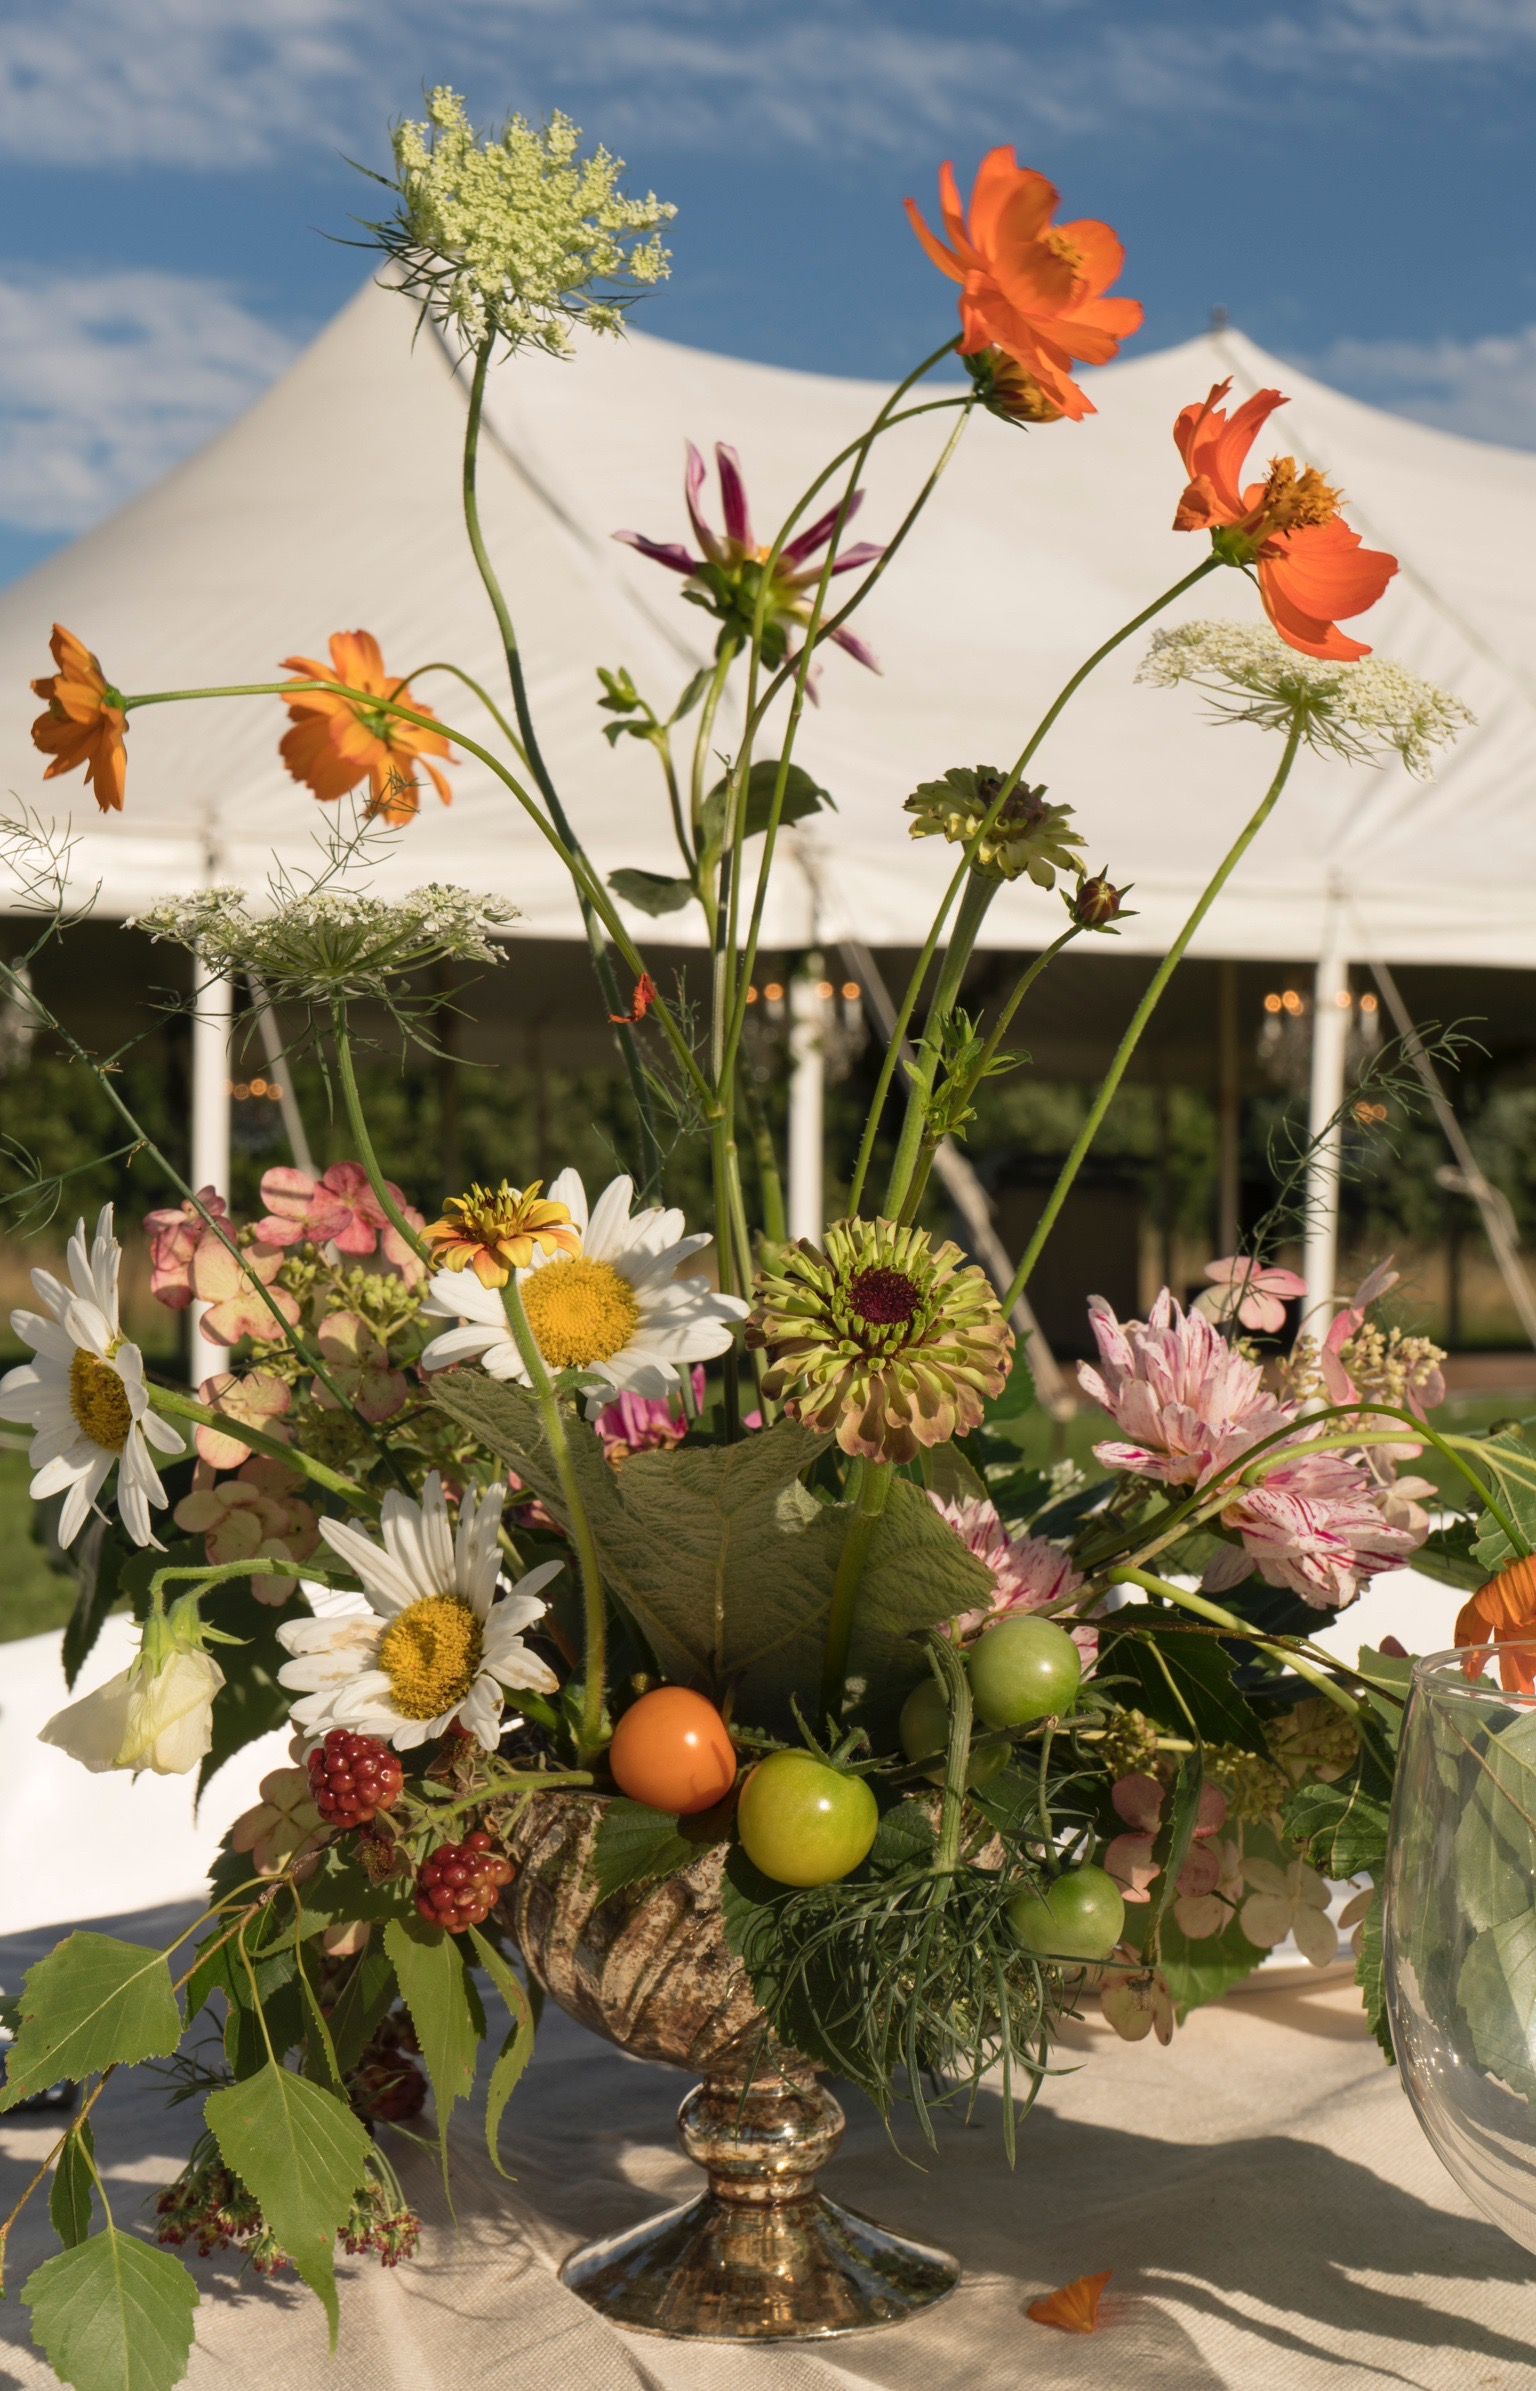 hudson-valley-farm-weddings-pioneer-farm-weddings-warwick-ny-flower-bouquet.jpg